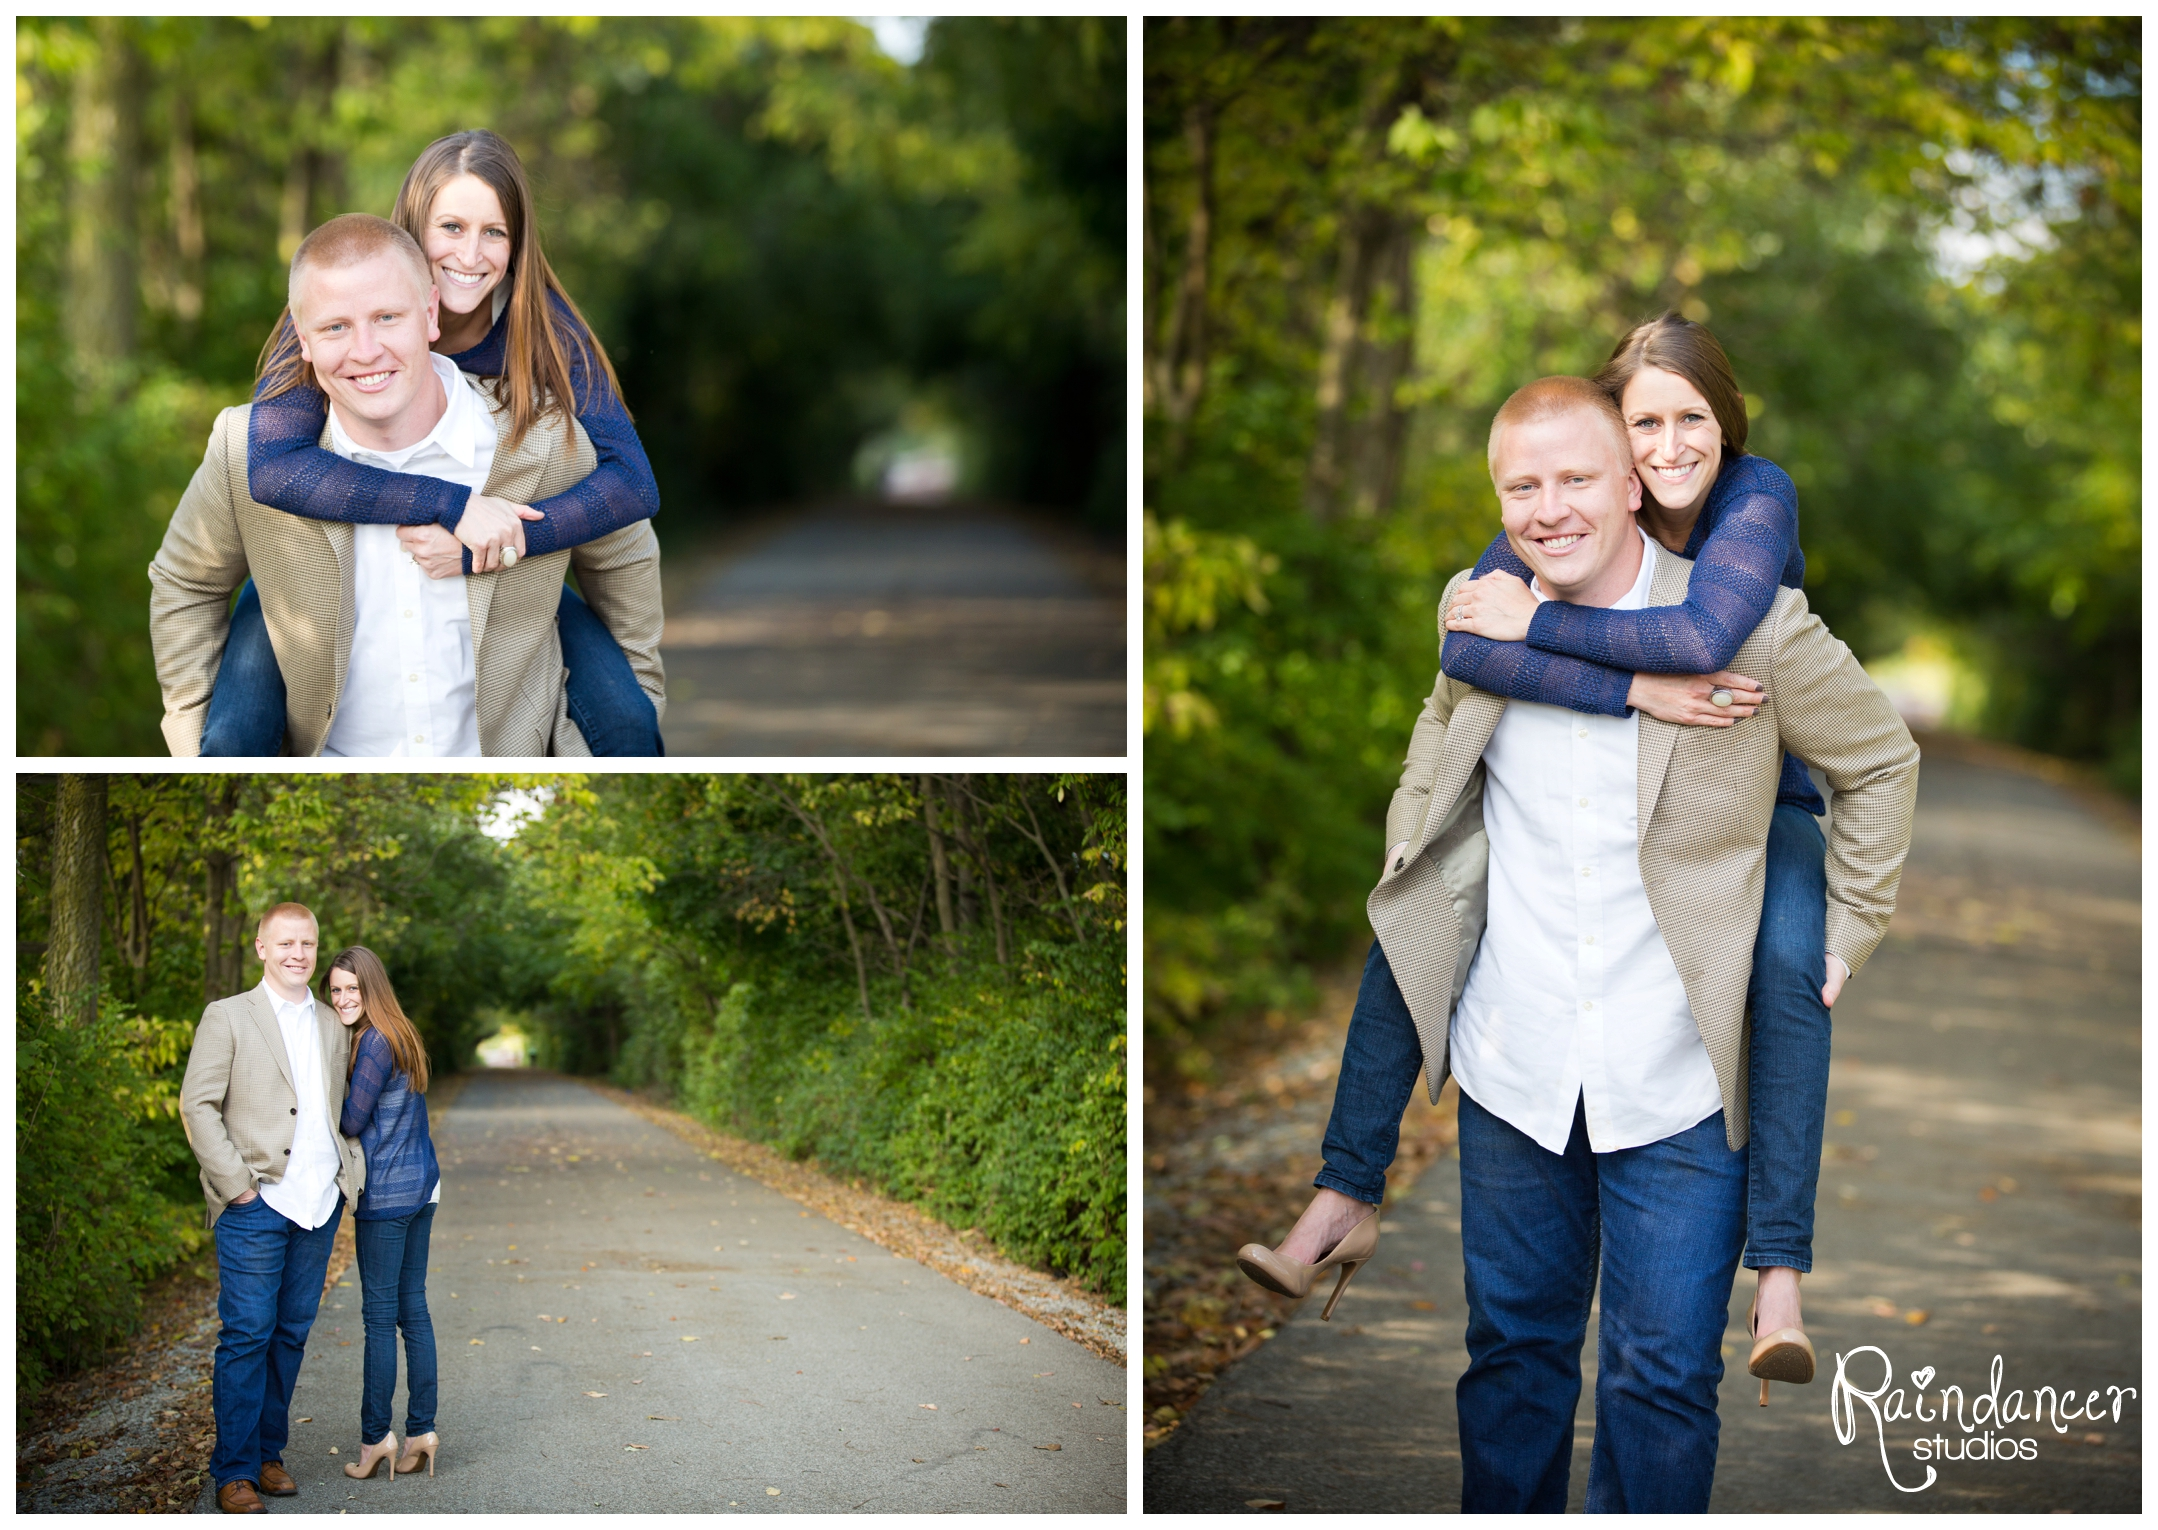 Indianapolis Engagement Photographer, Indianapolis wedding photographer, Indianapolis wedding and engagement photography